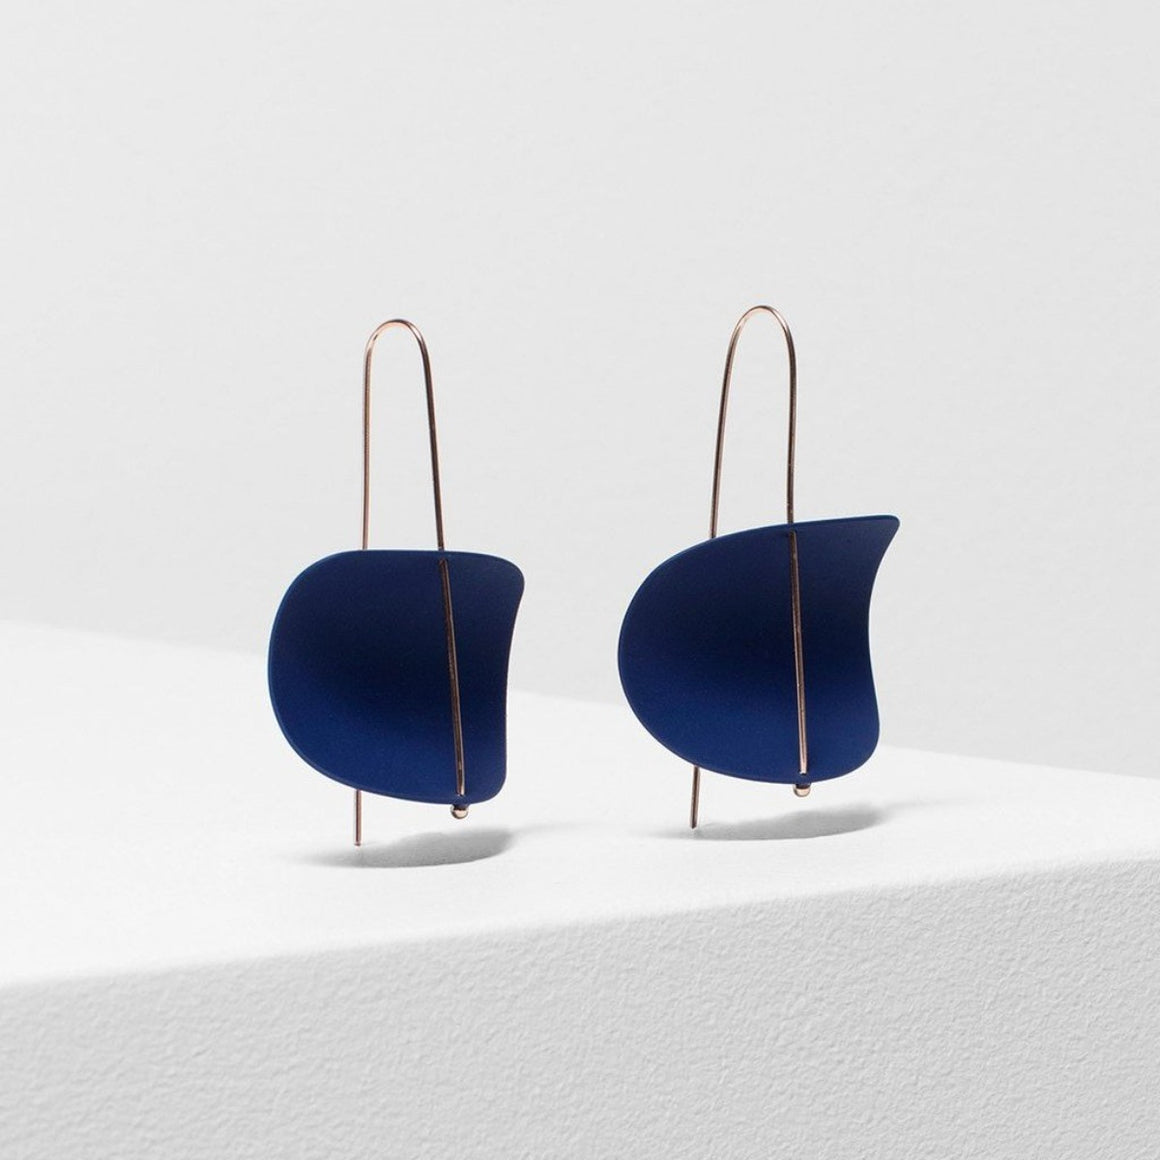 Image featuring two cobalt blue rubber earrings with a rose gold bar through the centre